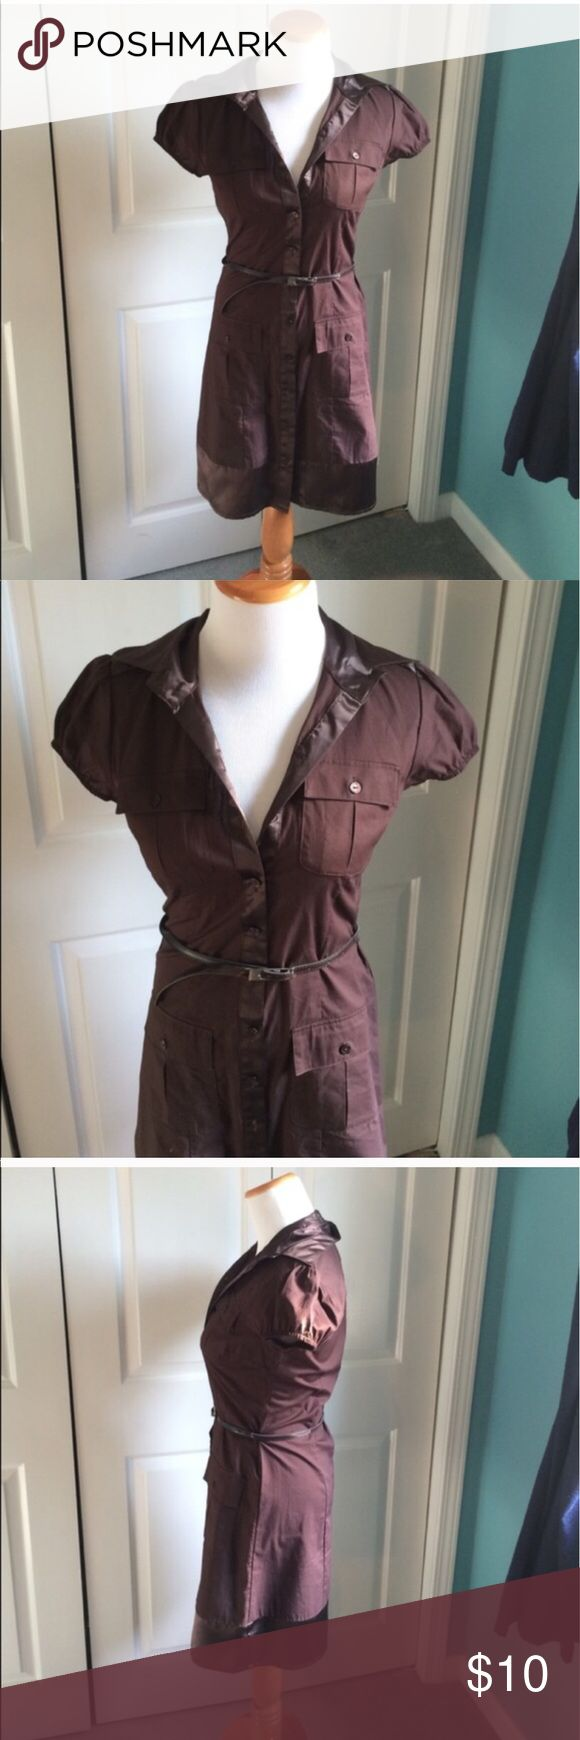 Military Cargo Shirt Dress Brown cargo/military shirt dress with removable belt. Silky bottom hem. Never worn, in perfect condition. NWOT. Dresses